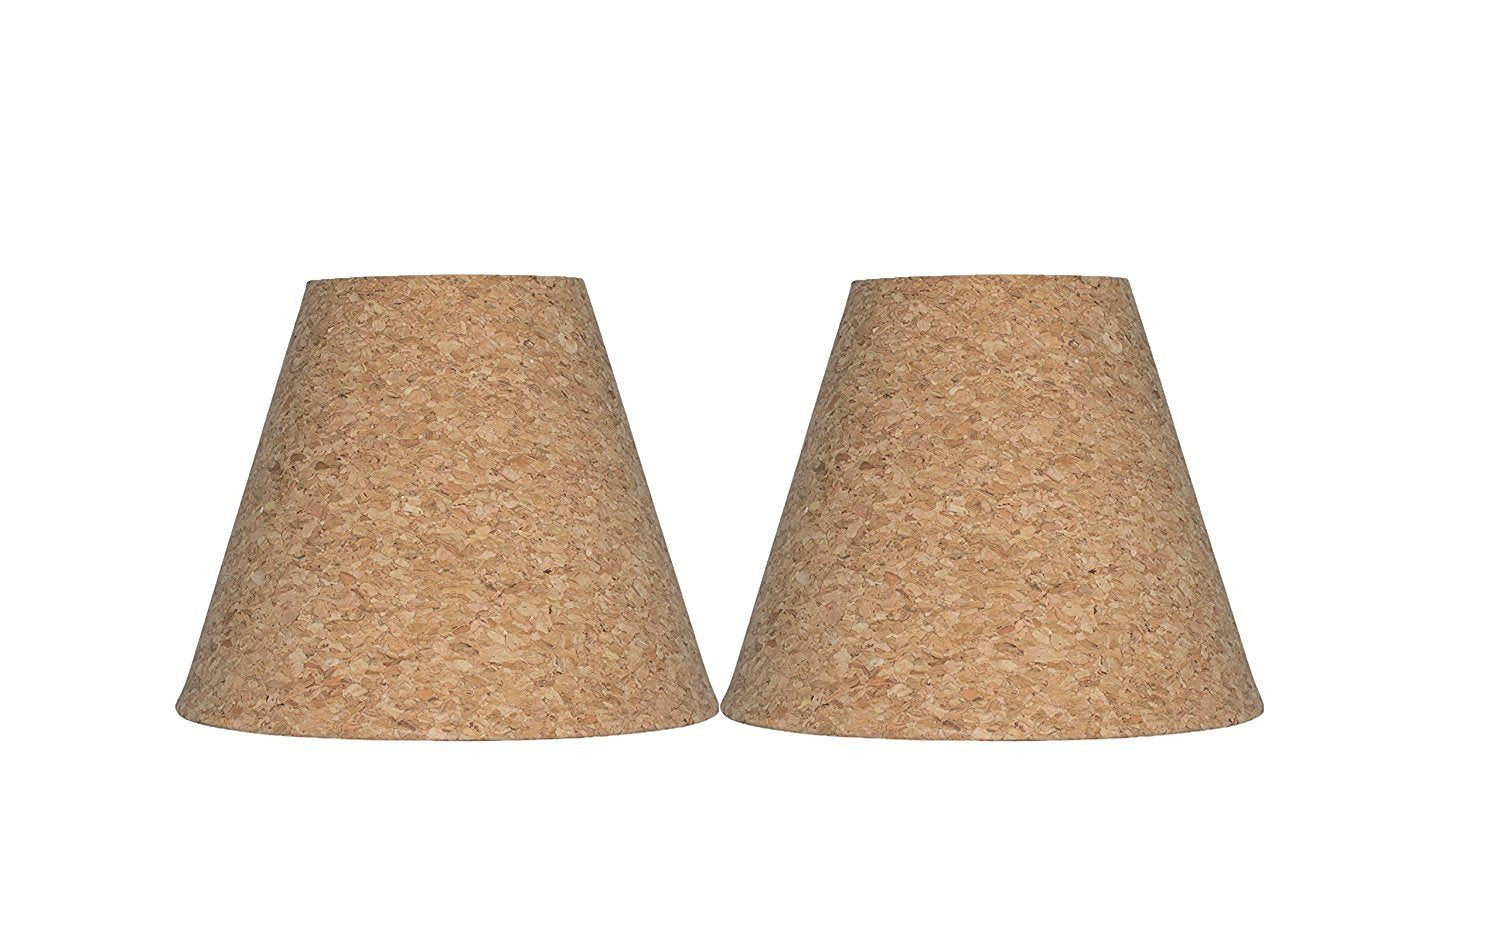 Cork 6 inch chandelier lamp shade urbanest cork 6 inch chandelier lamp shade aloadofball Images